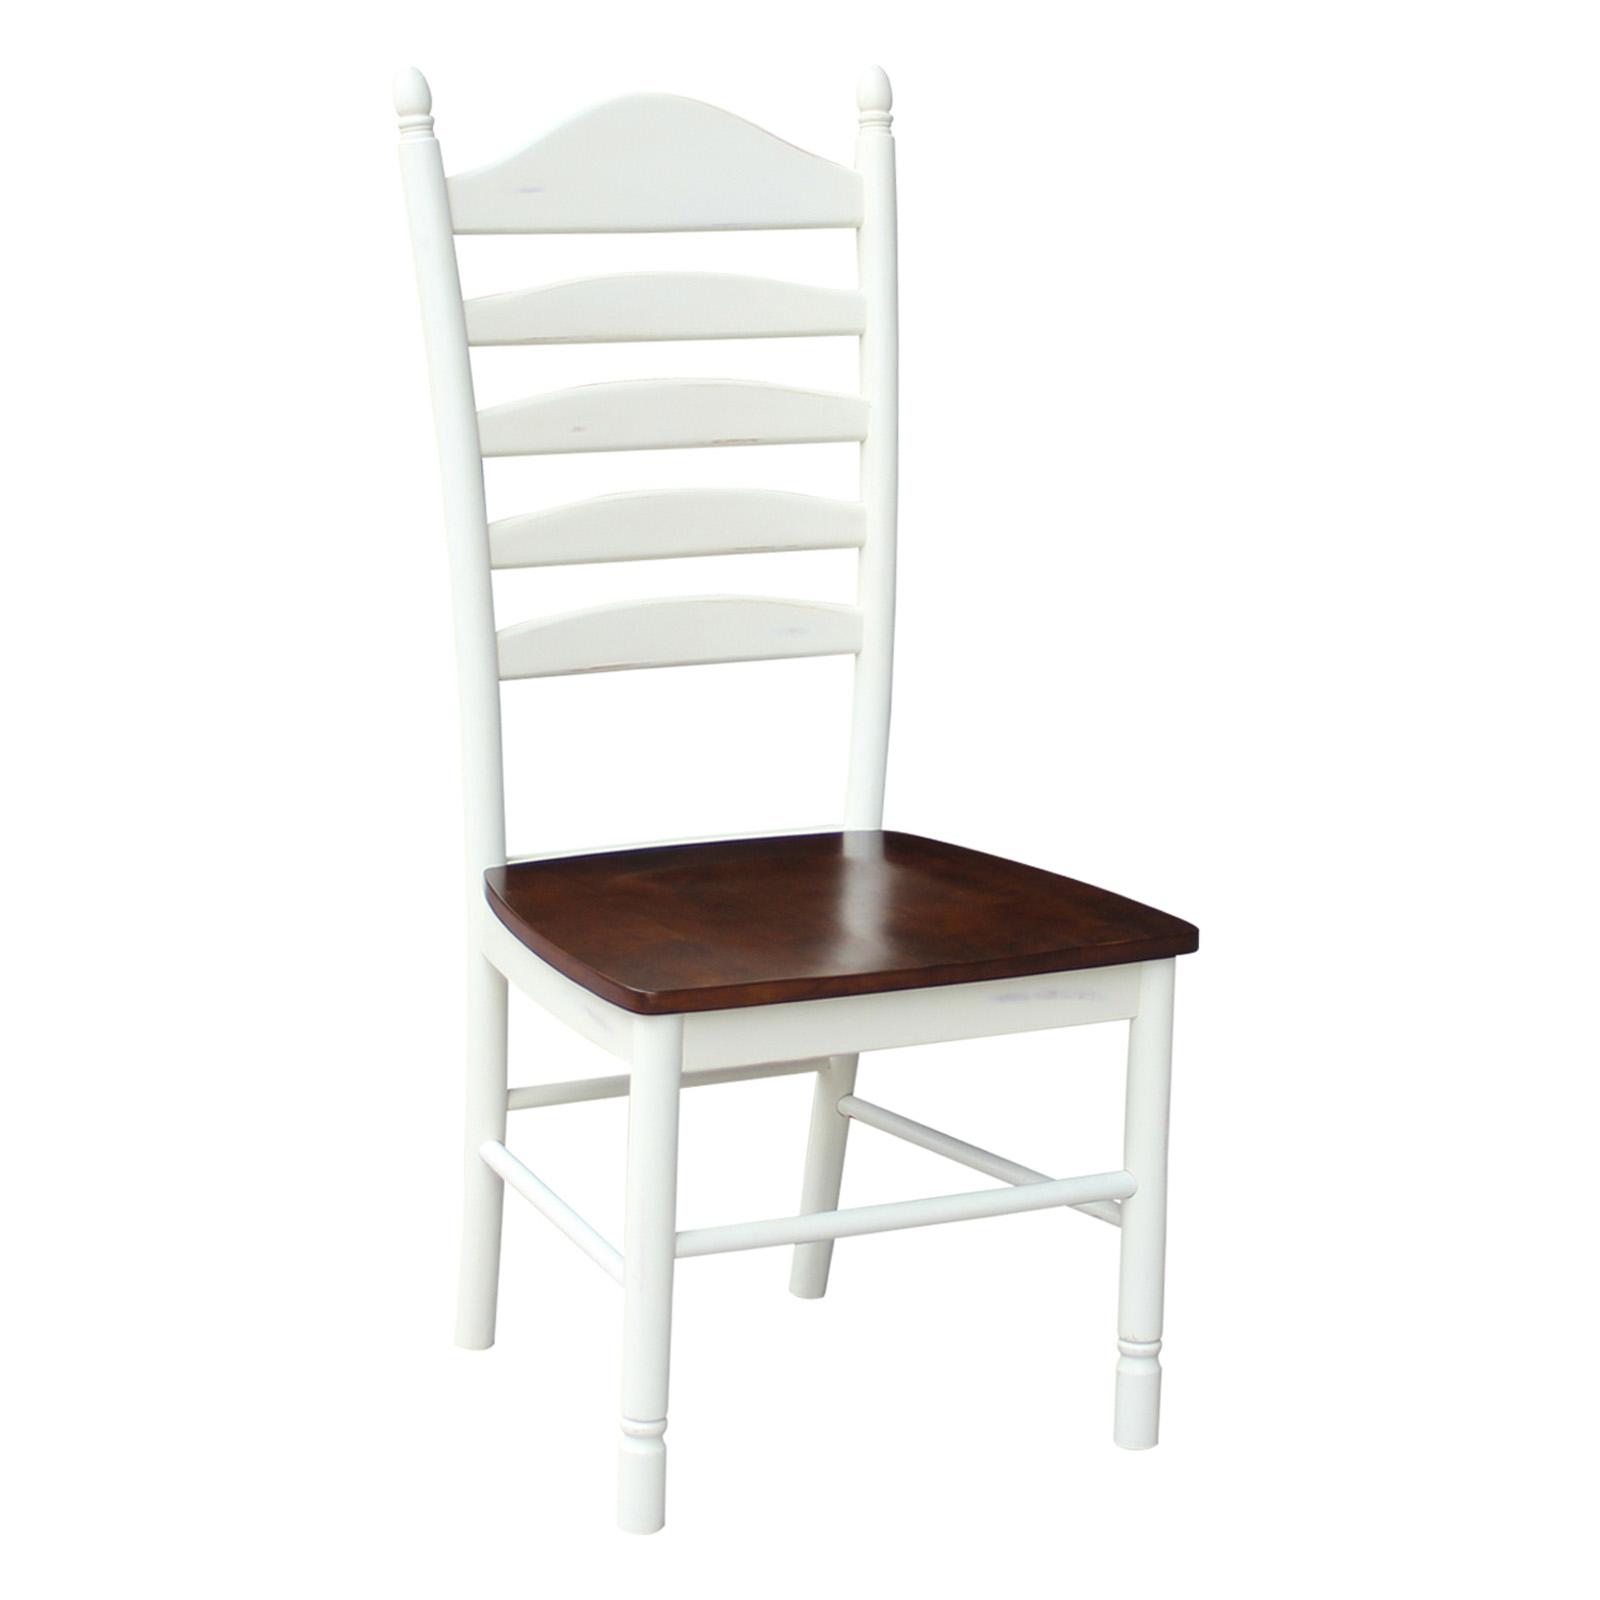 International Concepts Tall Ladderback Chair Set Of 2